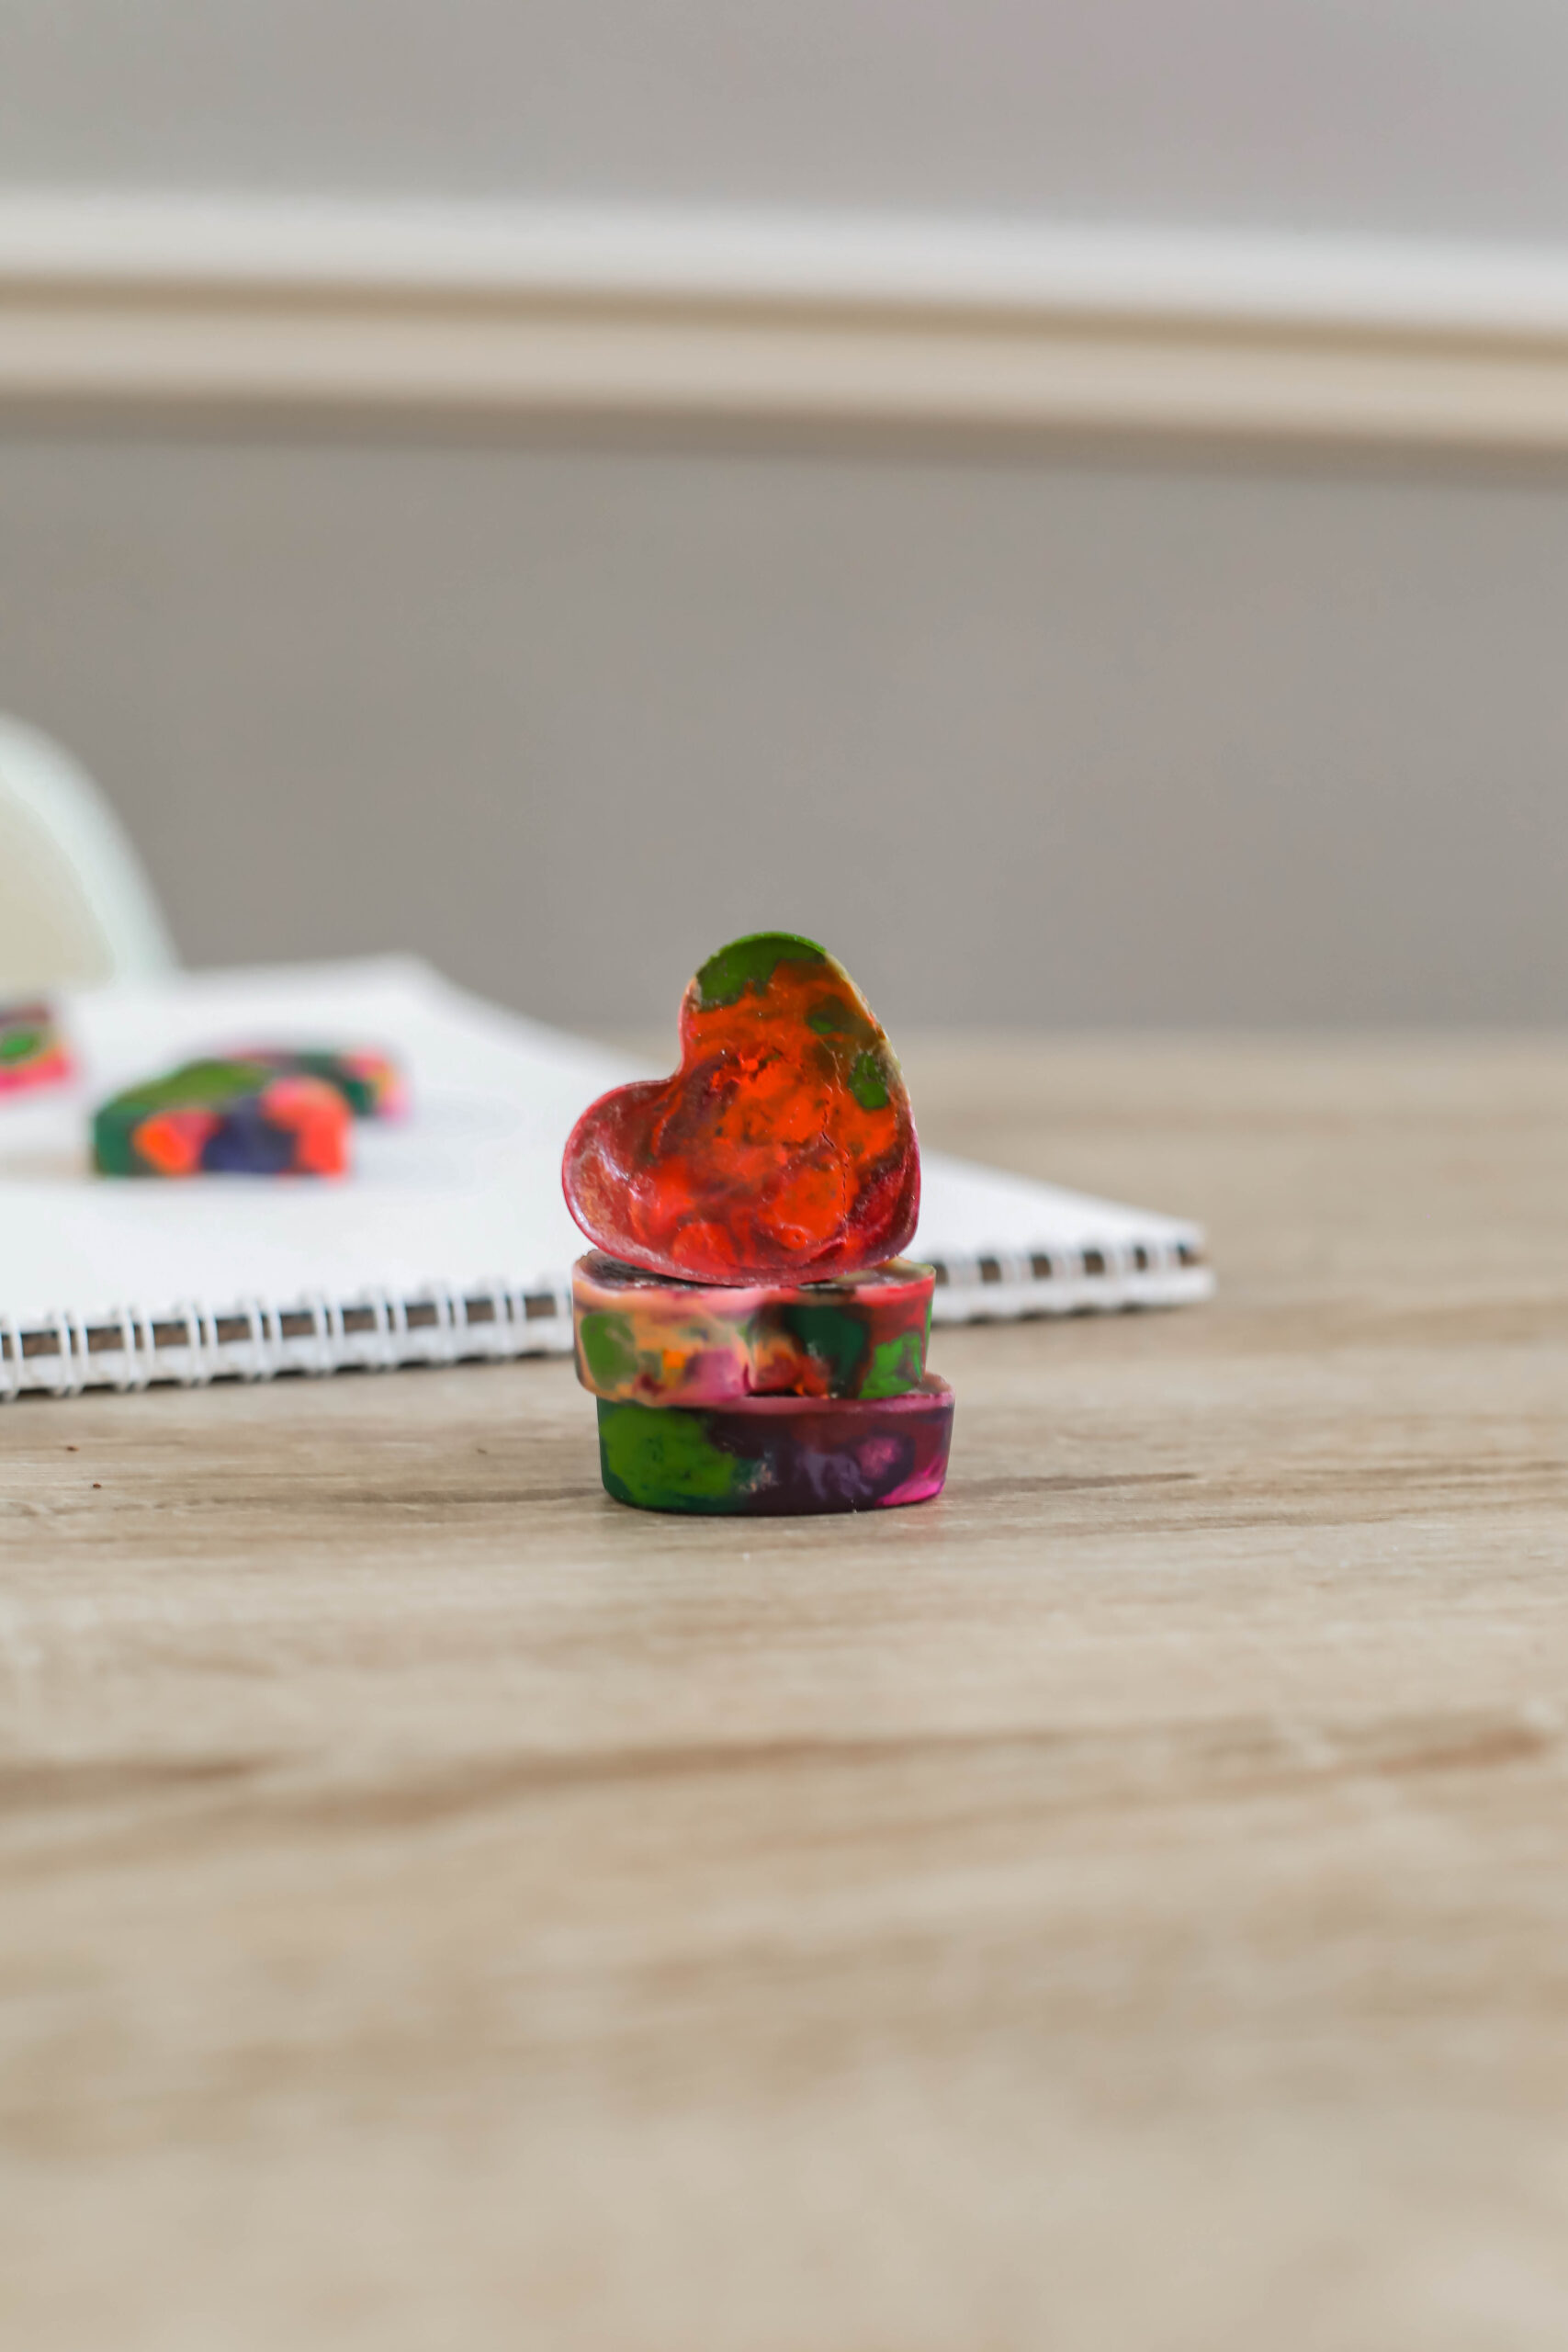 Looking for a fun and easy at home craft project? These DIY Rainbow Crayons were a ton of fun to make, and look ADORABLE!